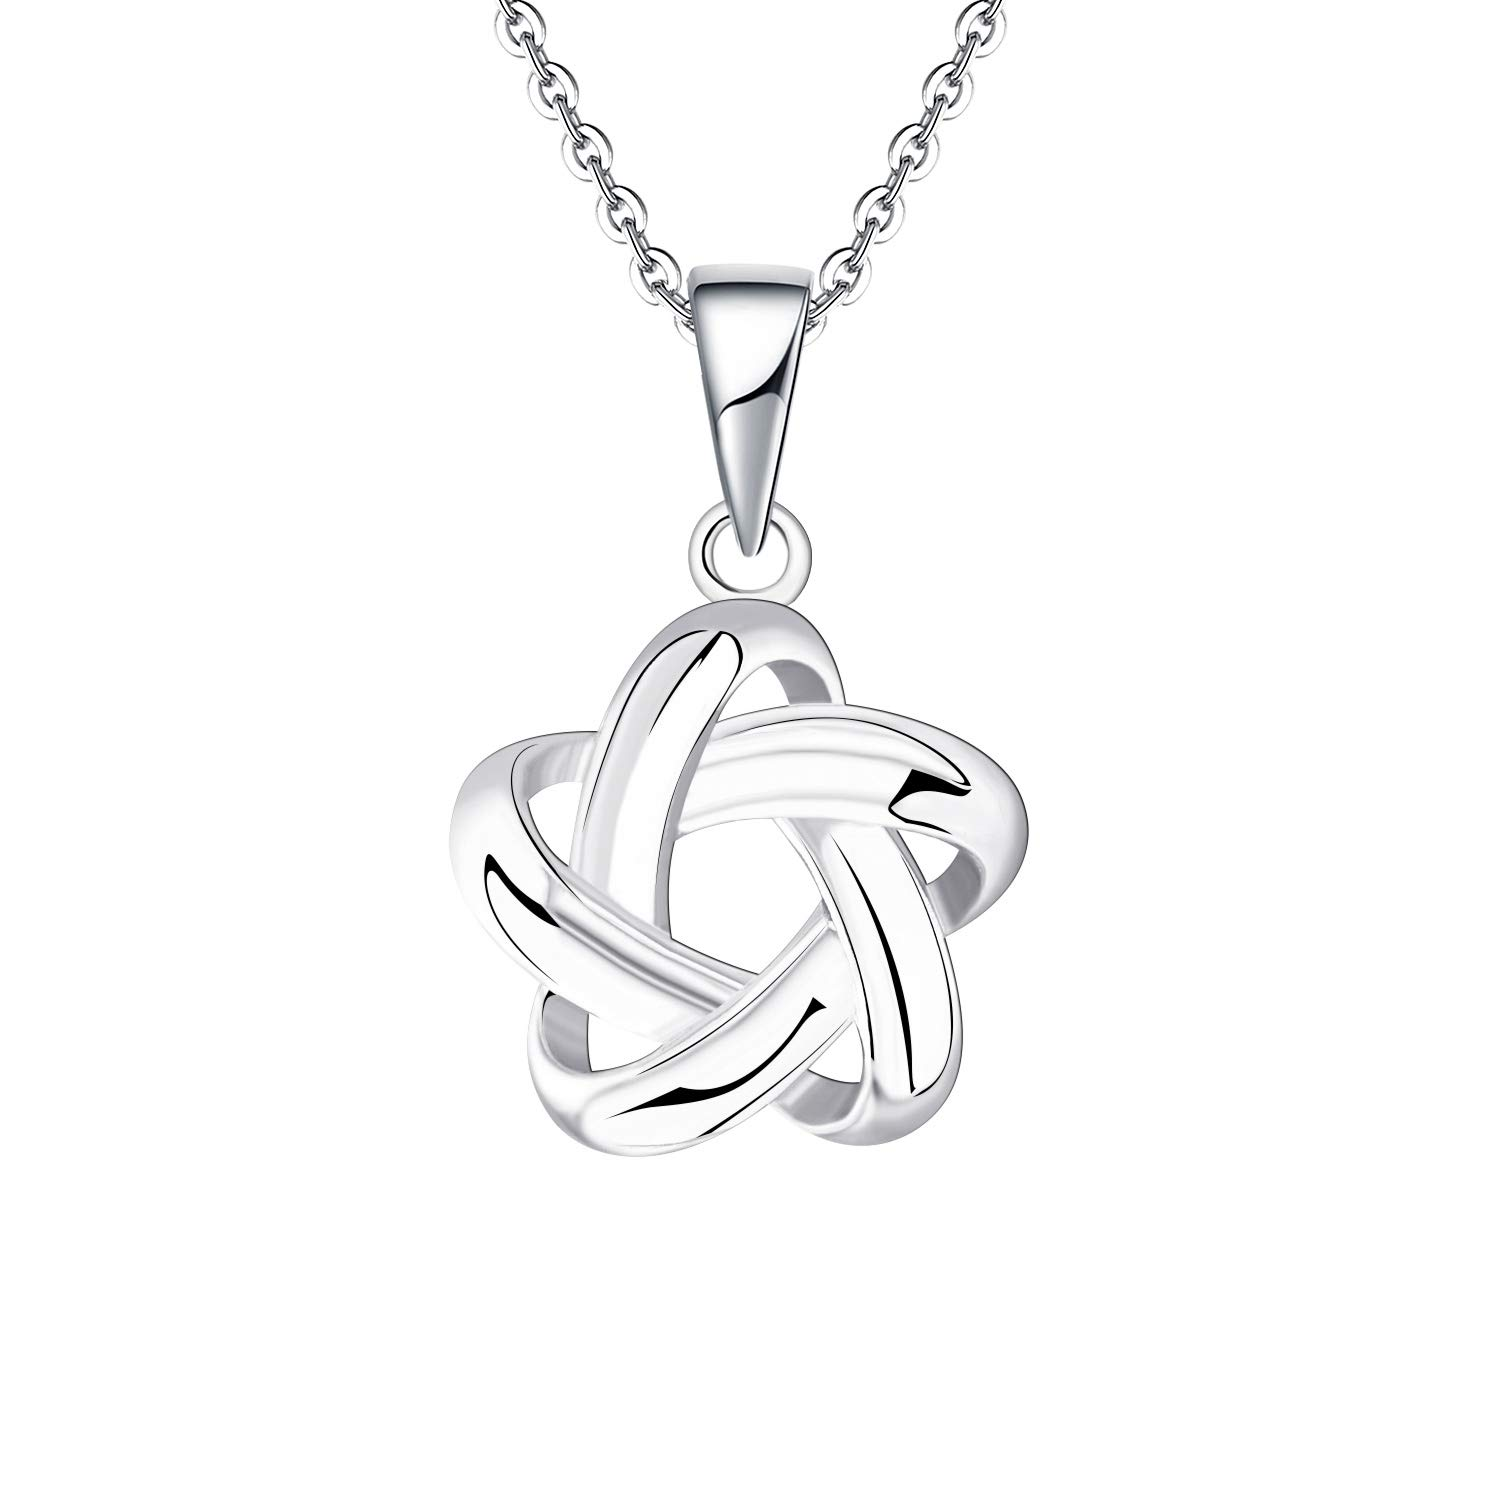 9ct White Gold Diamond Love Knot Pendant Necklace on Chain